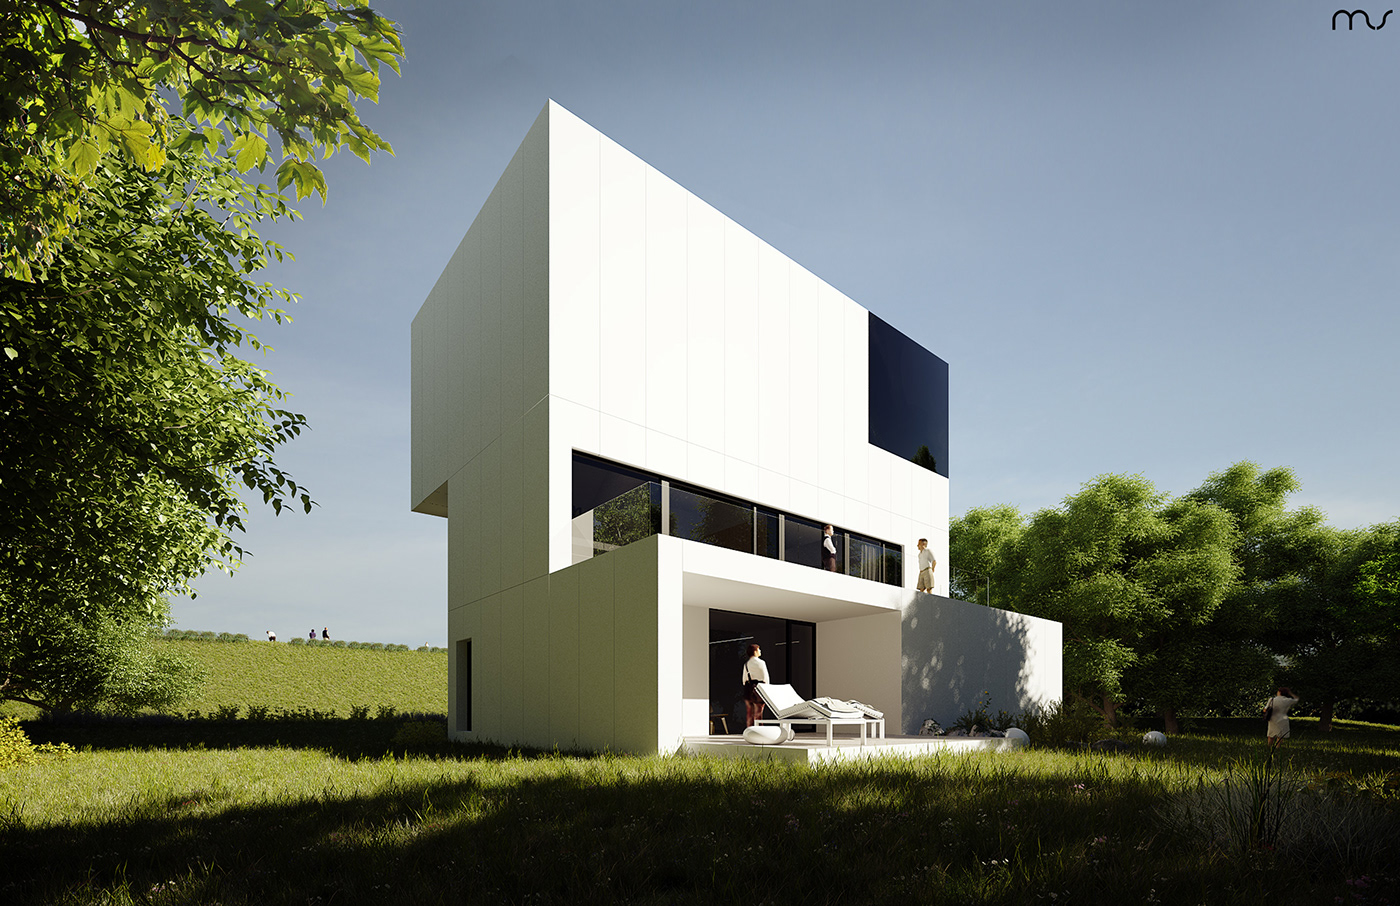 architecture building conceptual house housing interiordesign Minimalism musarchitects polisharchitects residential